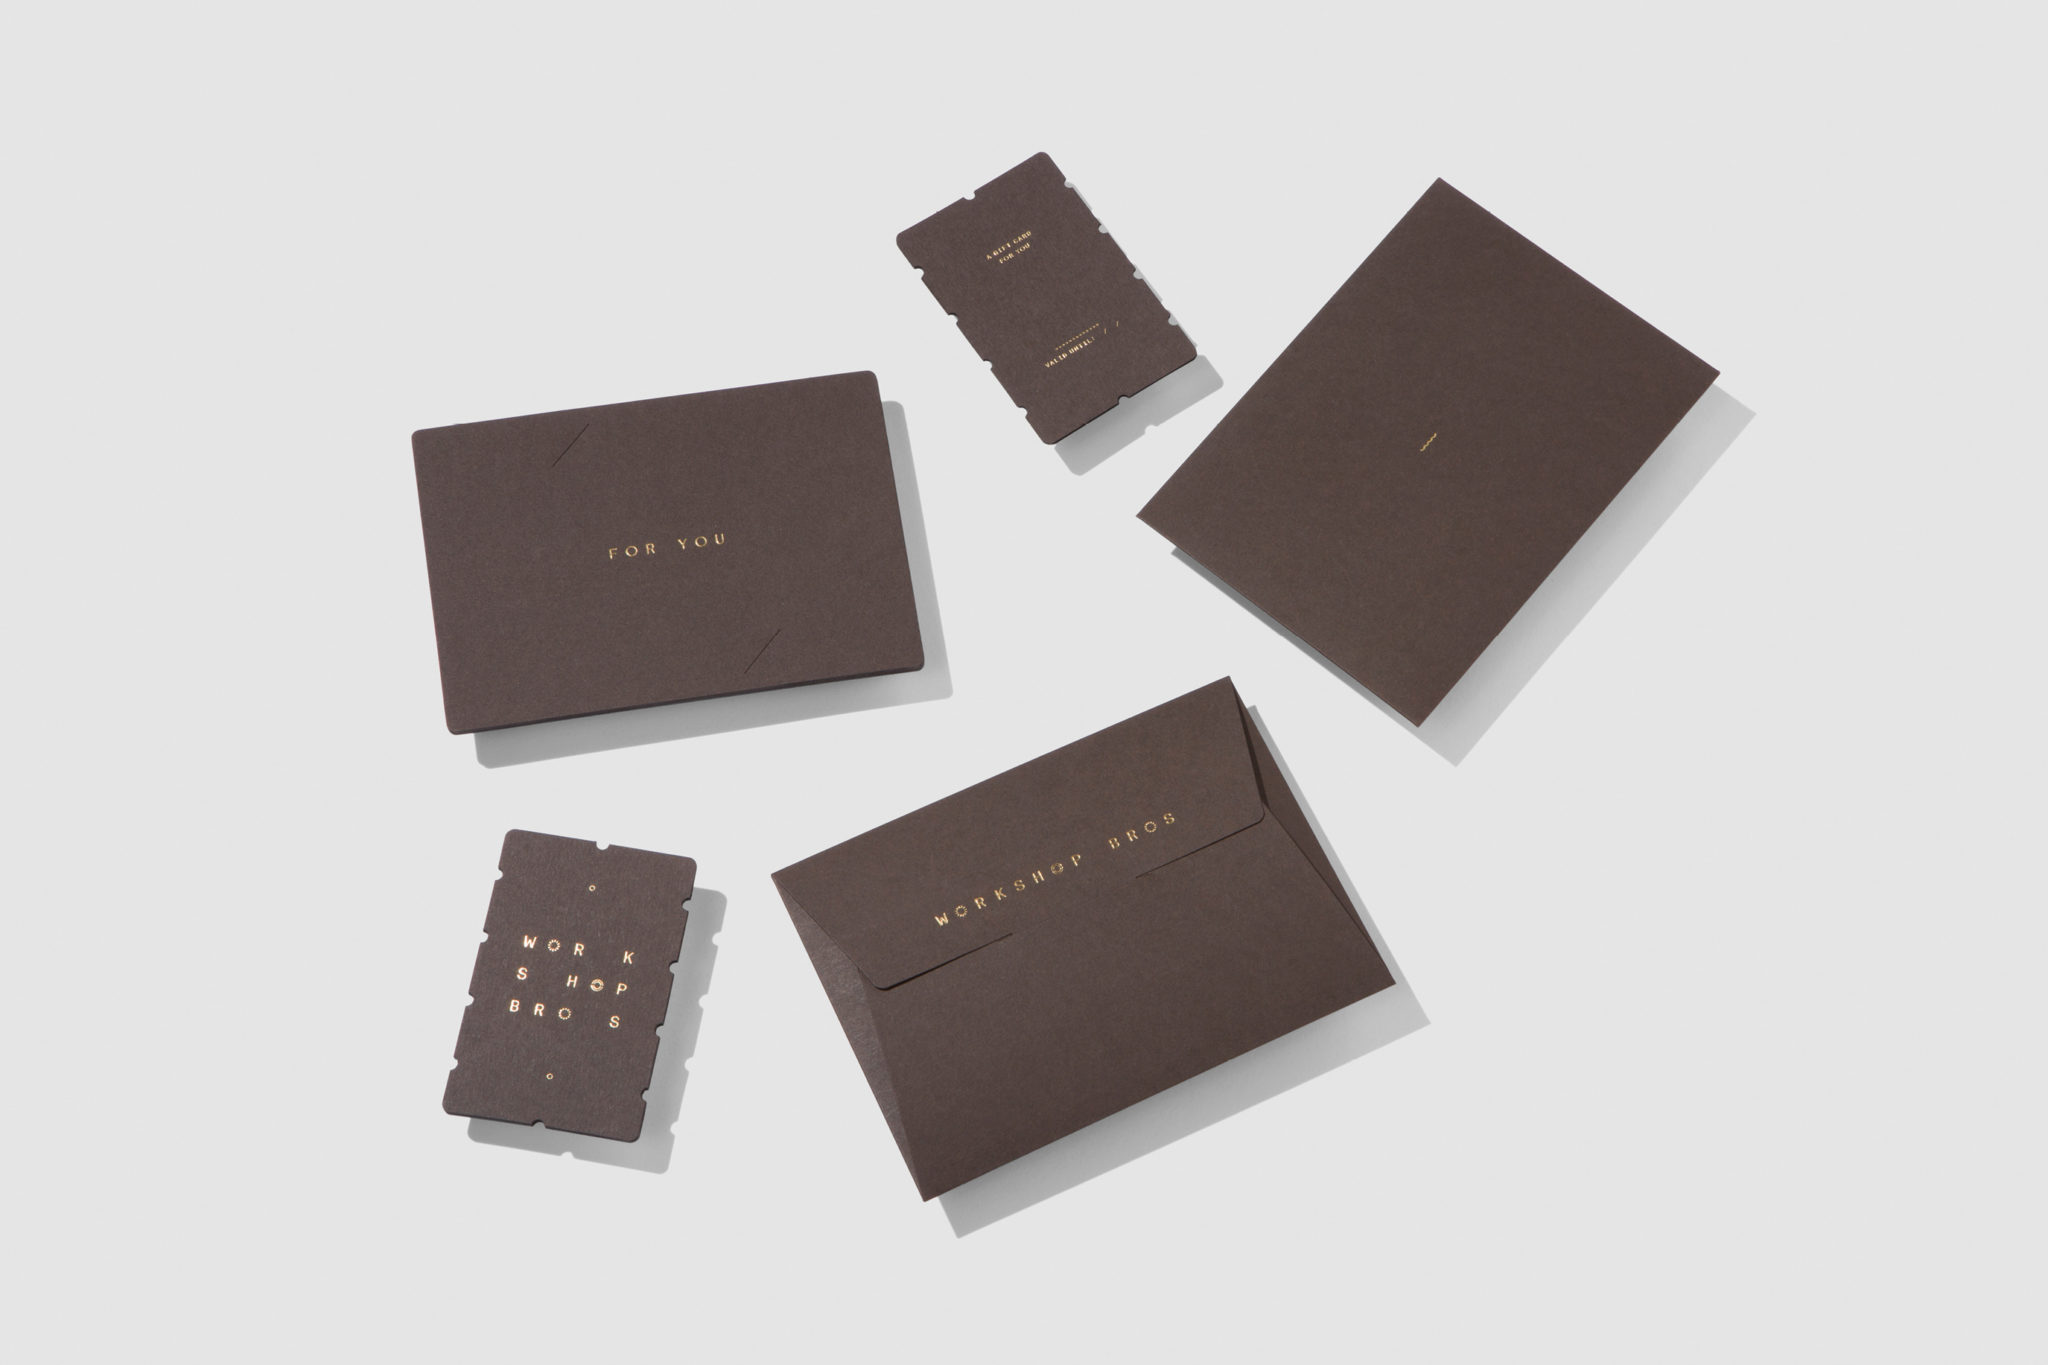 Premium Business Cards & Gift Certificates for Workshop Brothers on Colorplan 1